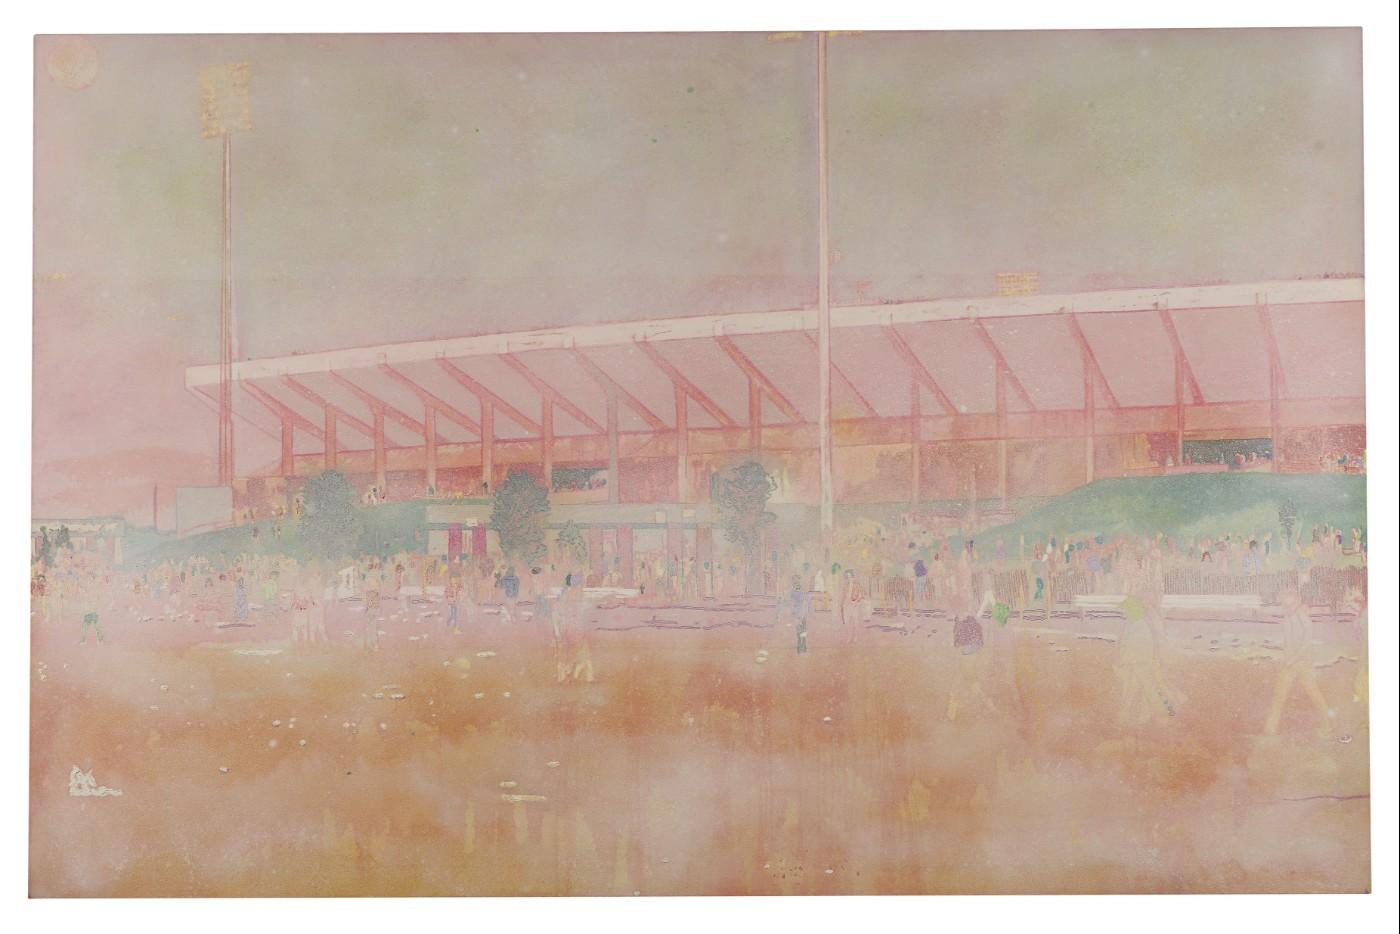 Peter Doig, Buffalo Station I, 1997-1998